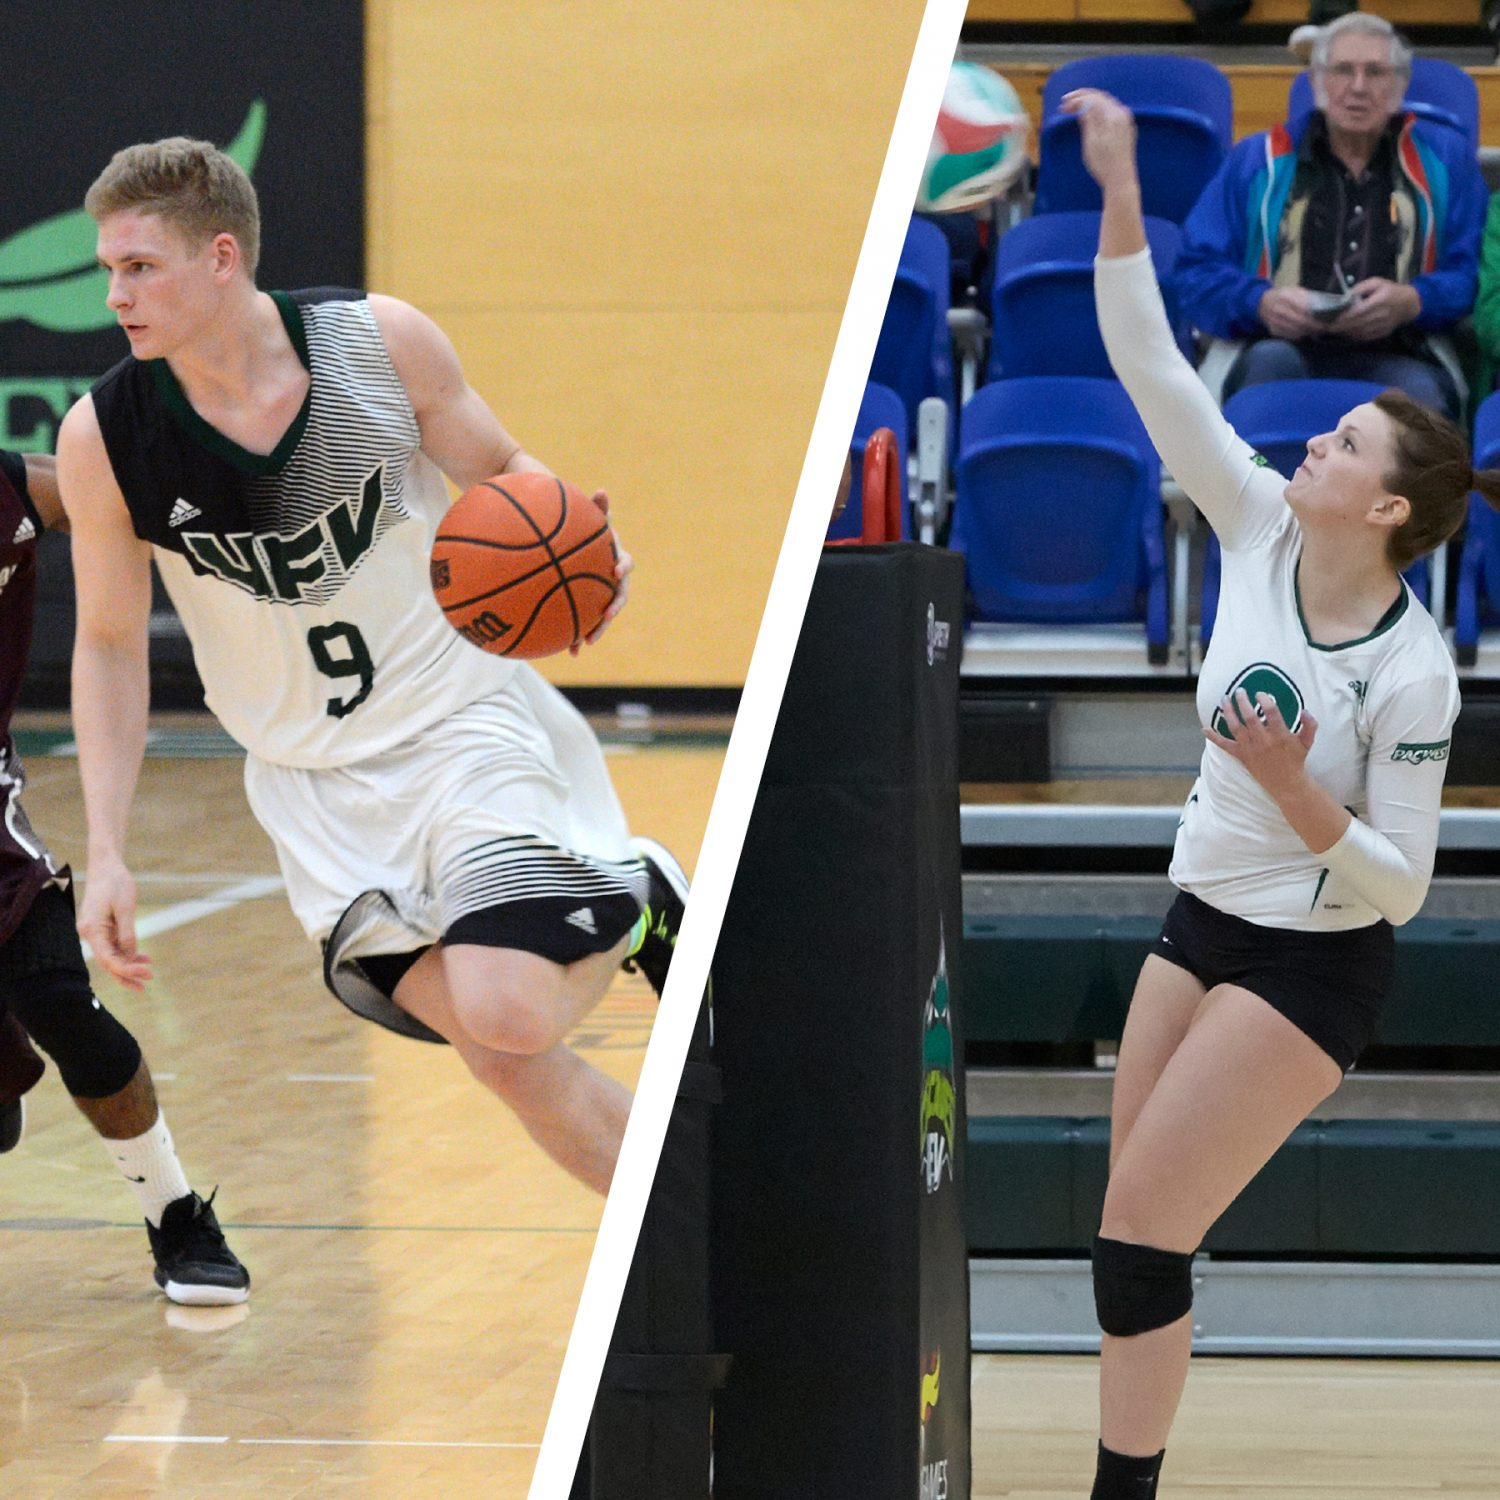 weekend preview cascades basketball volleyball teams hit the road ufv cascades. Black Bedroom Furniture Sets. Home Design Ideas